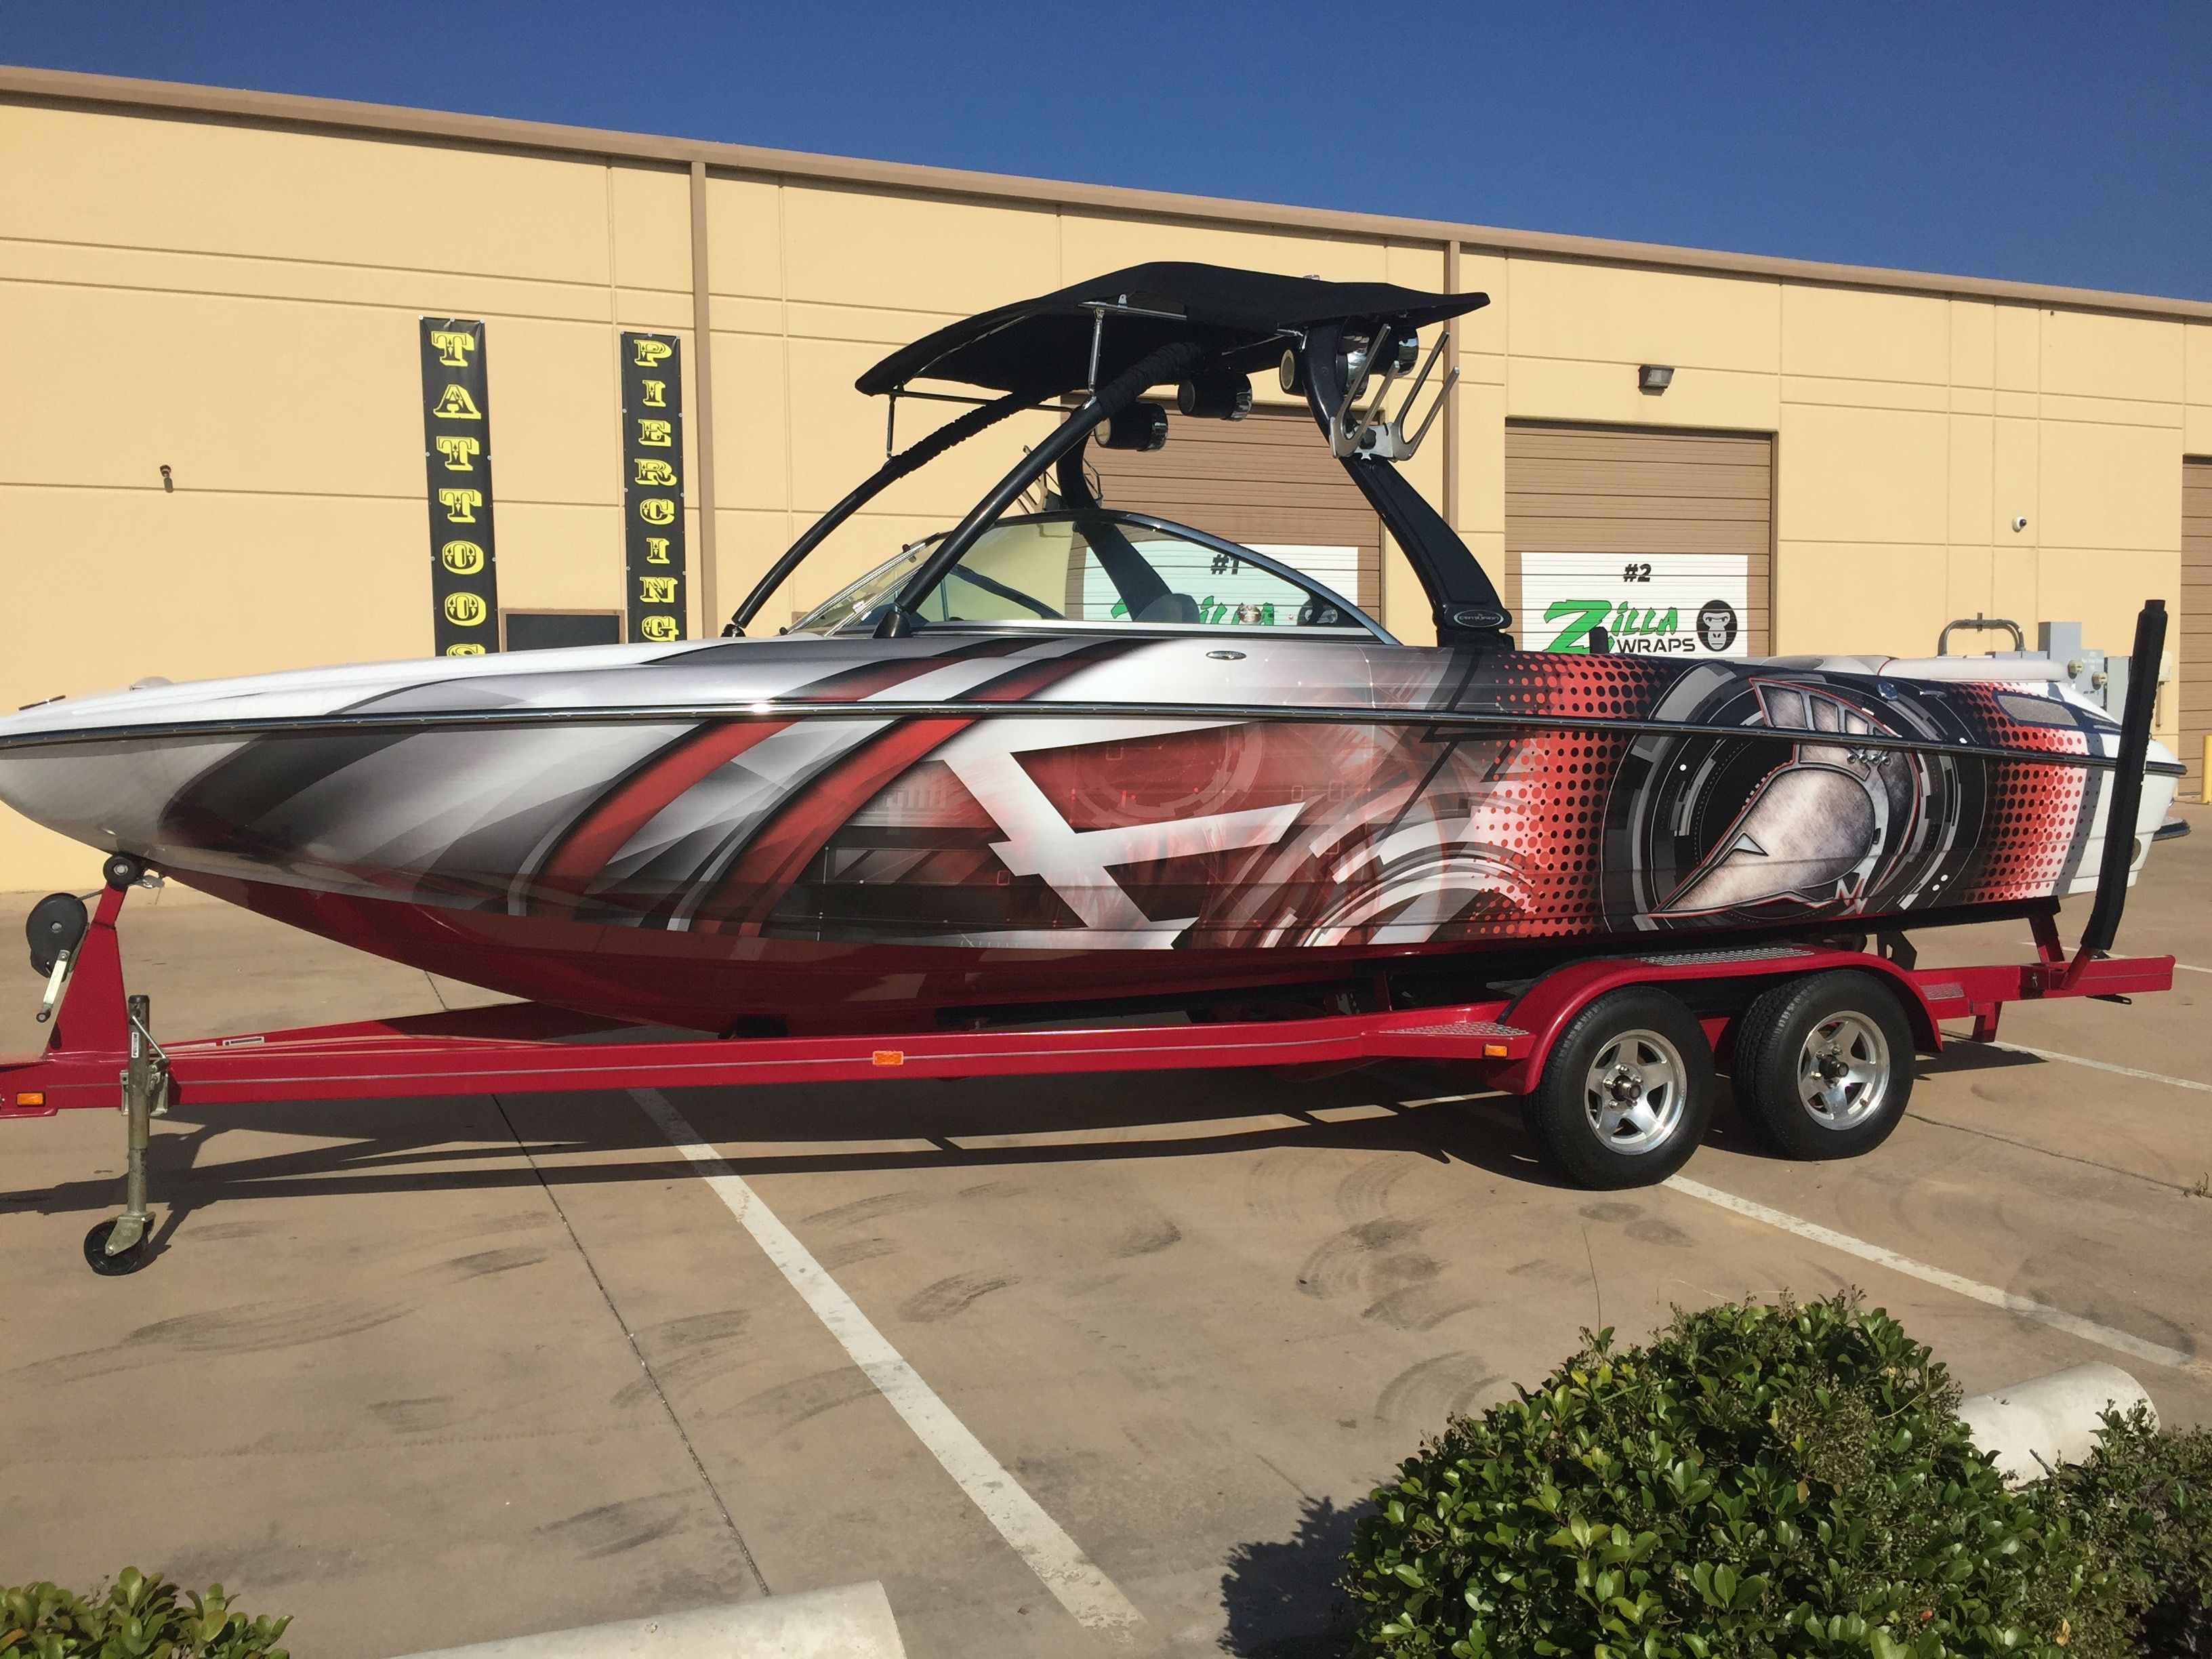 Cool Boat Wraps Trojan Helmet Boat Wraps Pinterest Boat Wraps - Sporting boat decalsbest boat wraps custom vinyl images on pinterest boat wraps